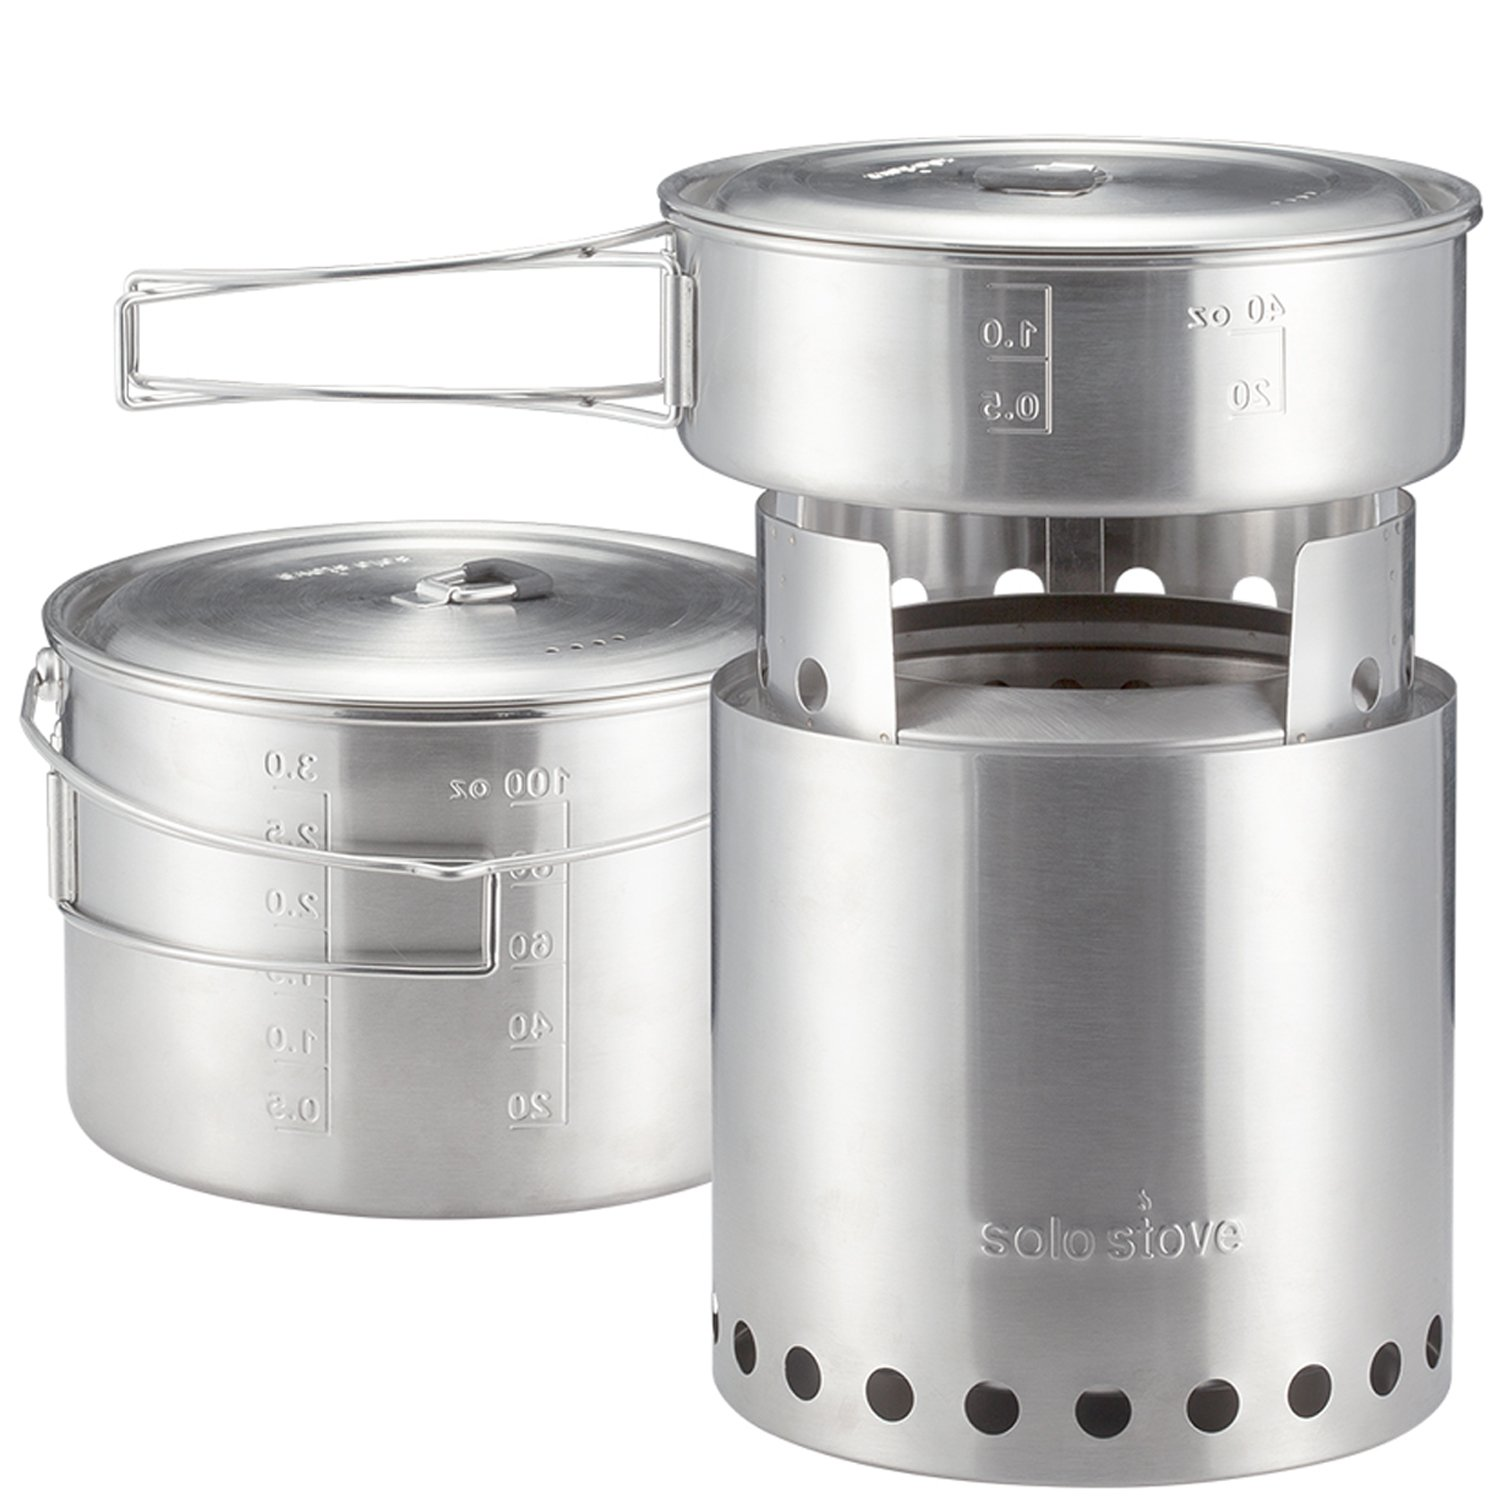 Amazon.com : Solo Stove Campfire U0026 2 Pot Set Combo: 4+ Person Wood Burning  Camping Stove. Outdoor Kitchen Kit For Backpacking, Camping, Survival.